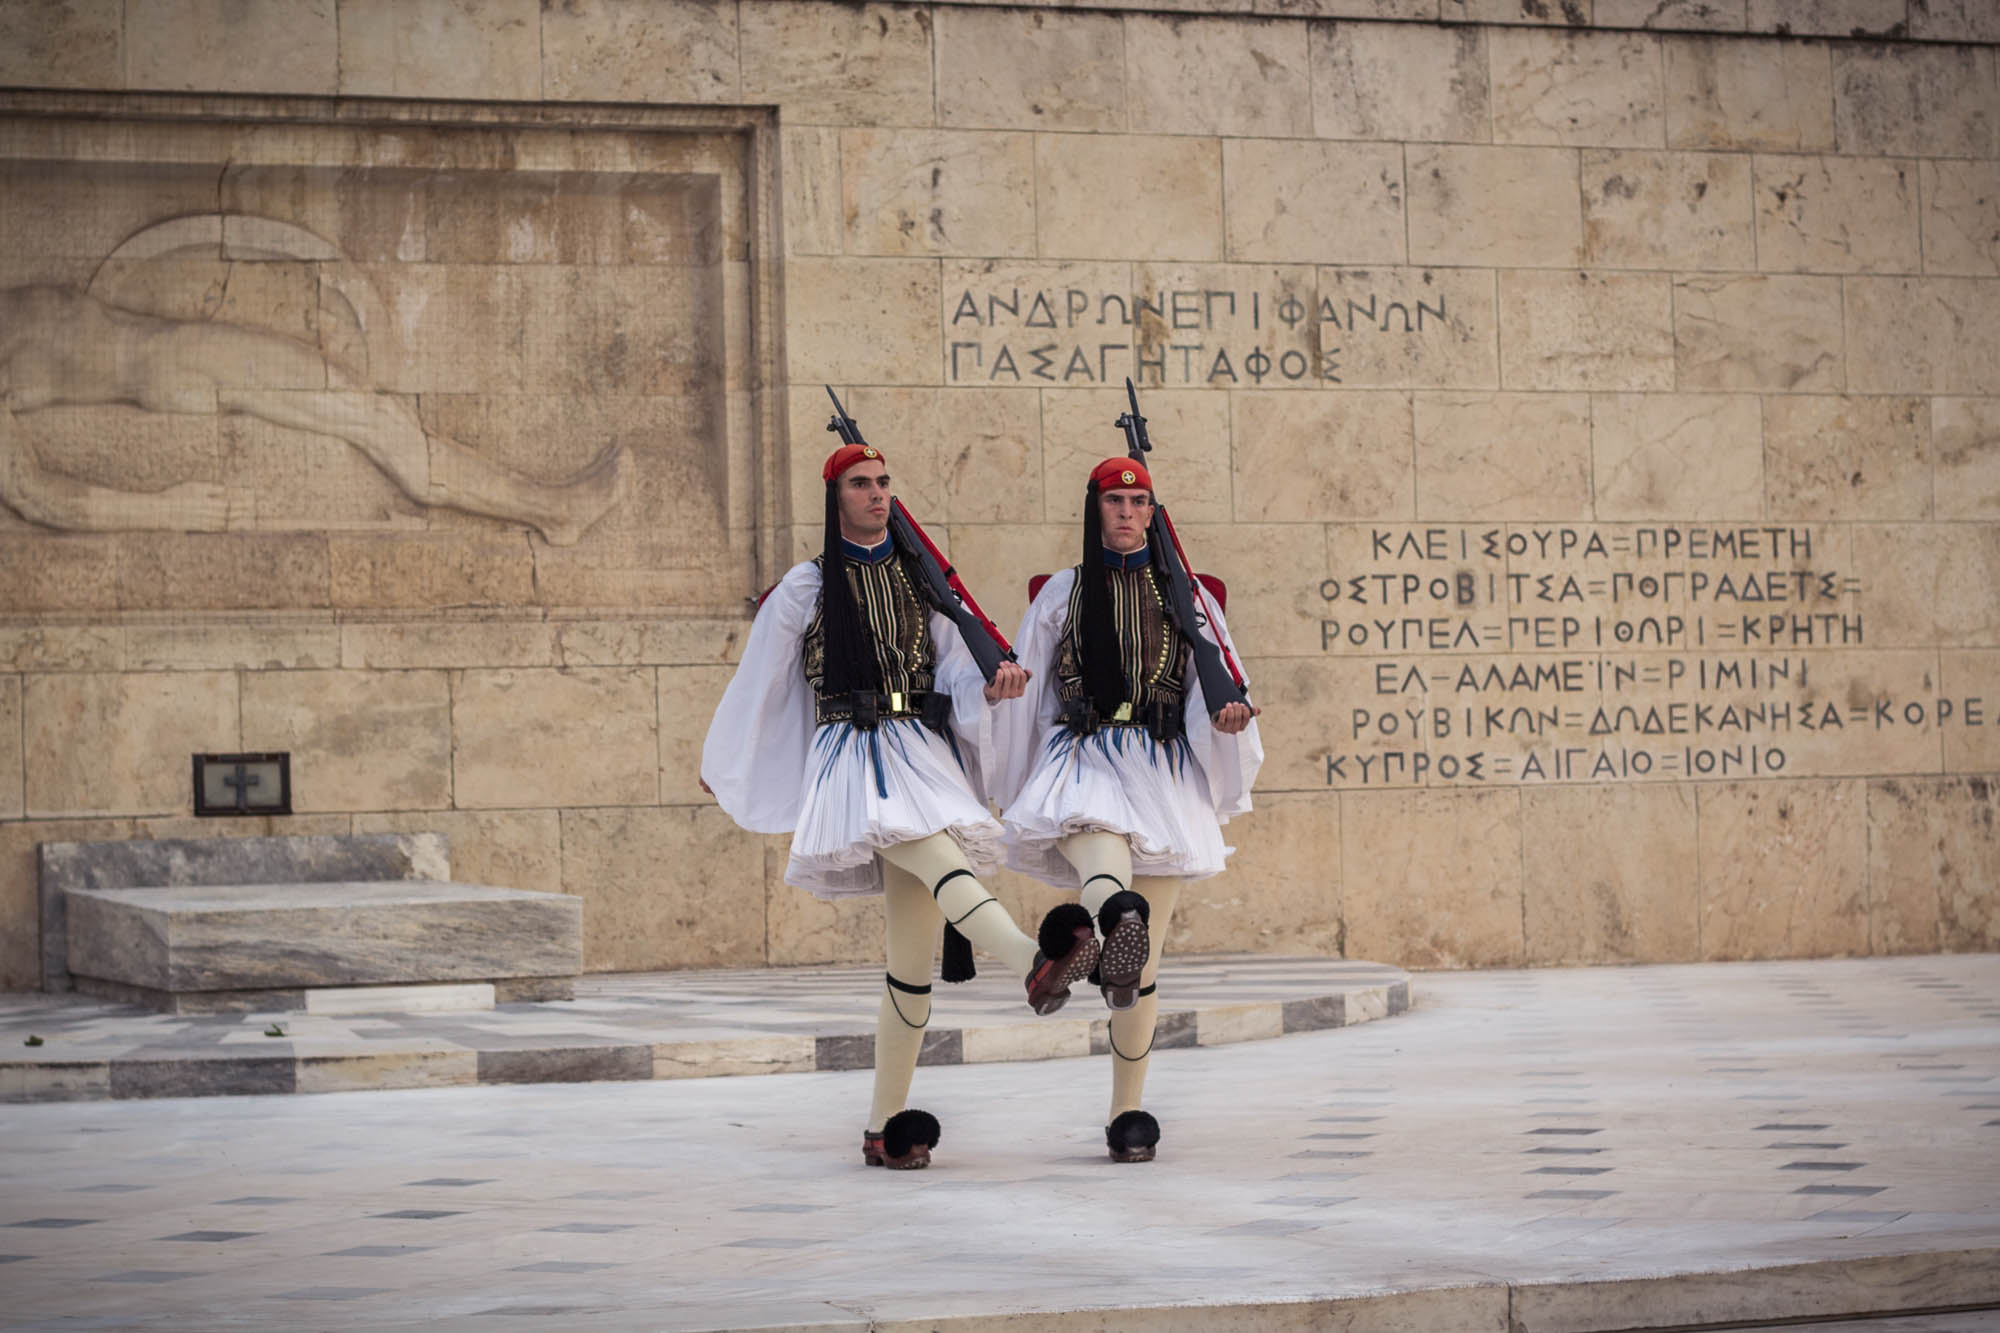 Evzones, Presidential Guard, Athens, Greece